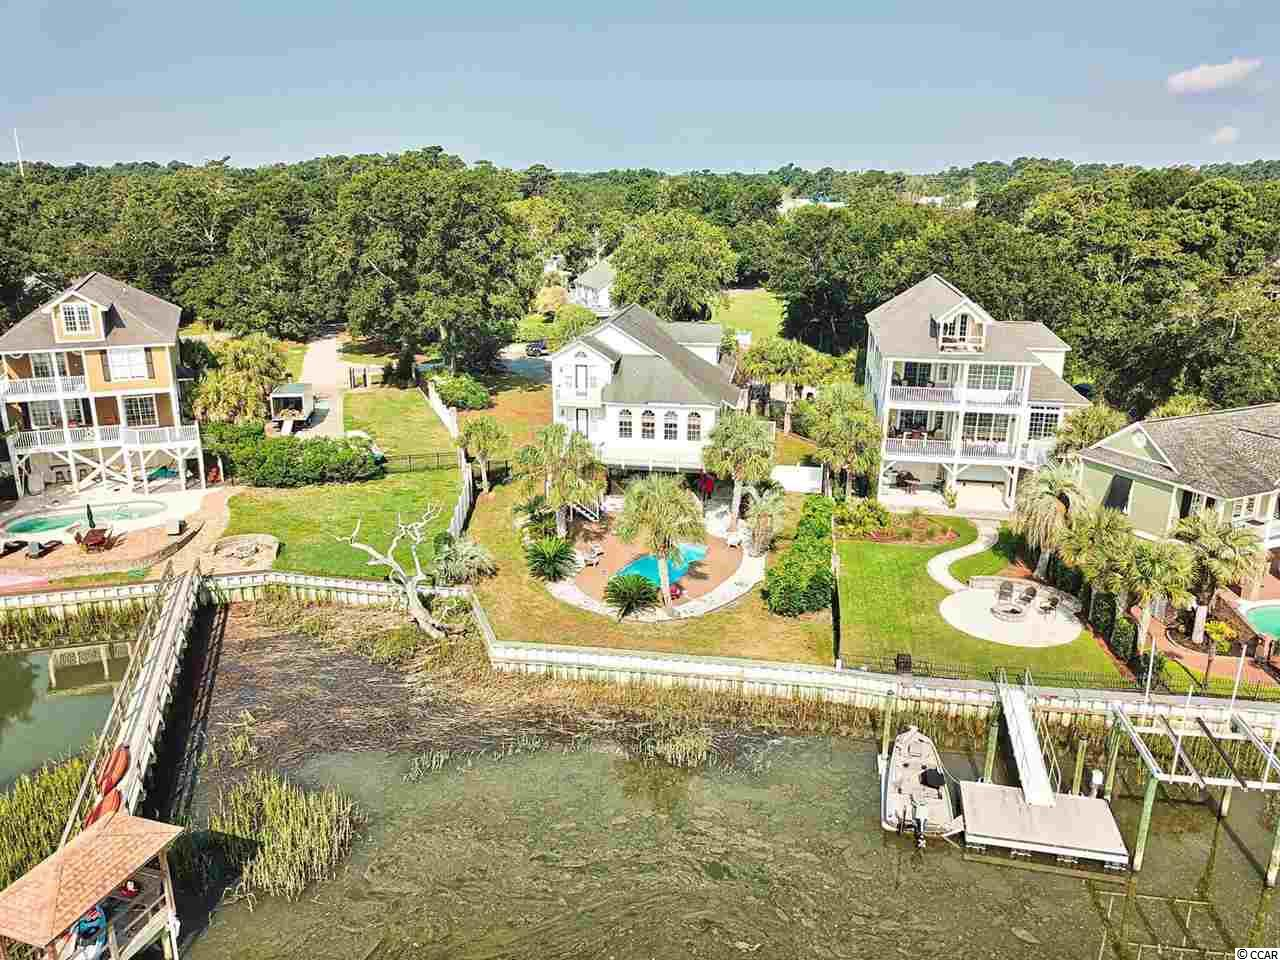 Fabulous views from the creek front home in the heart of Murrells Inlet! Live the Murrells Inlet lifestyle by walking to local restaurants like Beaver bar, Whiskey Fish, and many more. Seller has dock permit in hand and will be glad to build one for you, so you can take your boat to the marsh walk or out to the ocean! The home has 4 bedrooms and 2.5 baths, though one is being used an office right now. Stainless appliances, wood floors, huge great room, 1st floor master with large closet, and so much more. Plenty of parking underneath for all the toys and vehicles. Large back deck to enjoy the sunsets over the inlet.. Inground pool with huge decking as well.. This home is priced to sell and wont last! Set your appointment today!